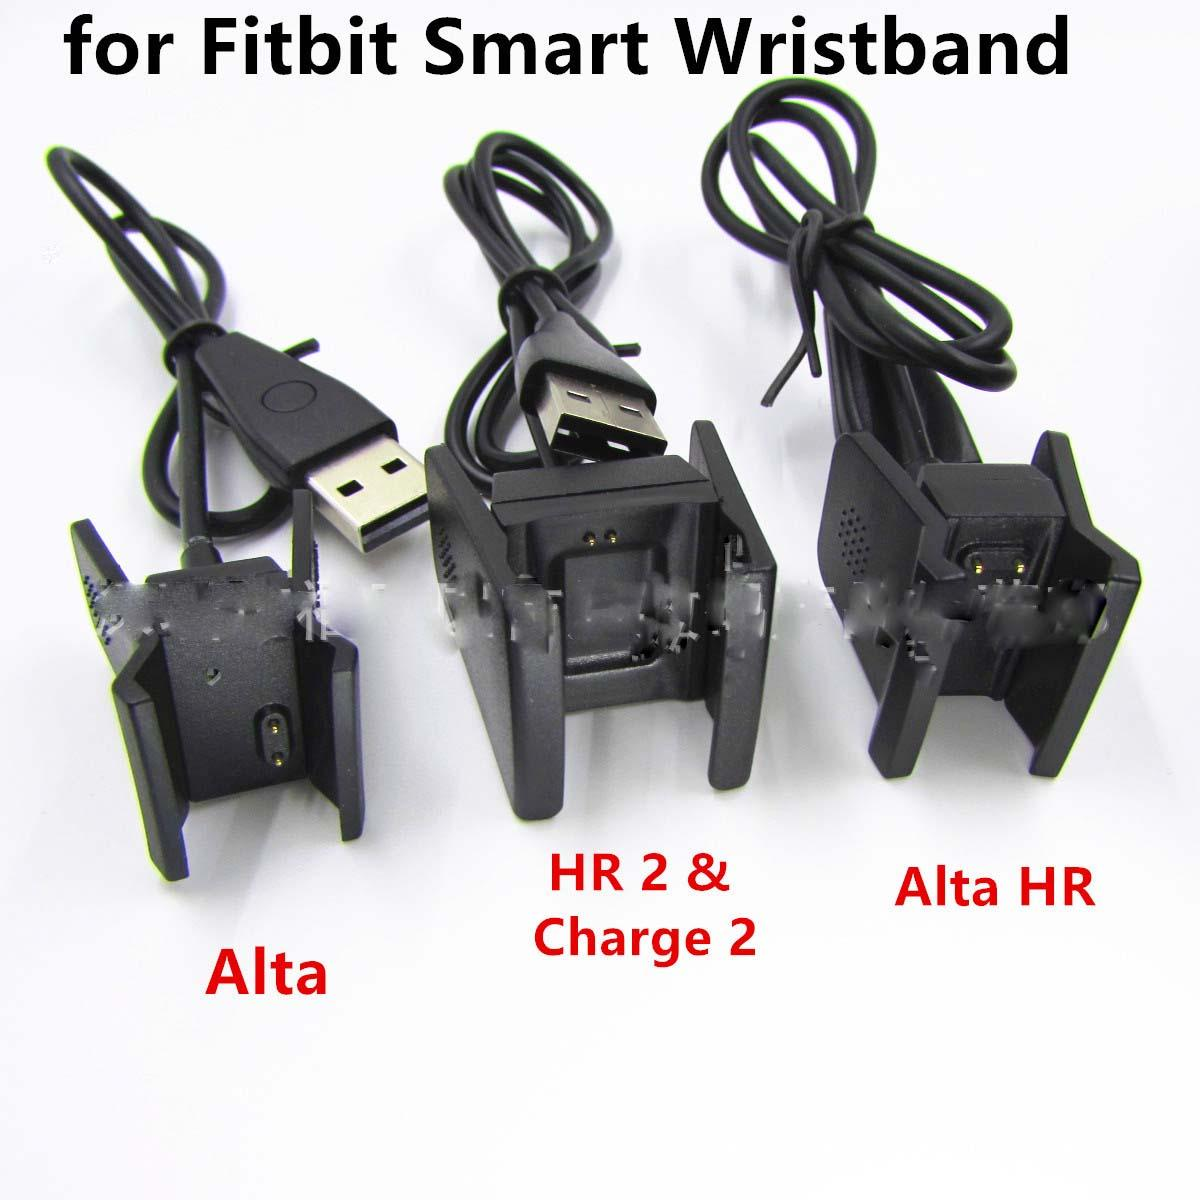 Fitbit Charge 2 Charger : A wide variety of fitbit charge 2 charger options are available to you, such as use.